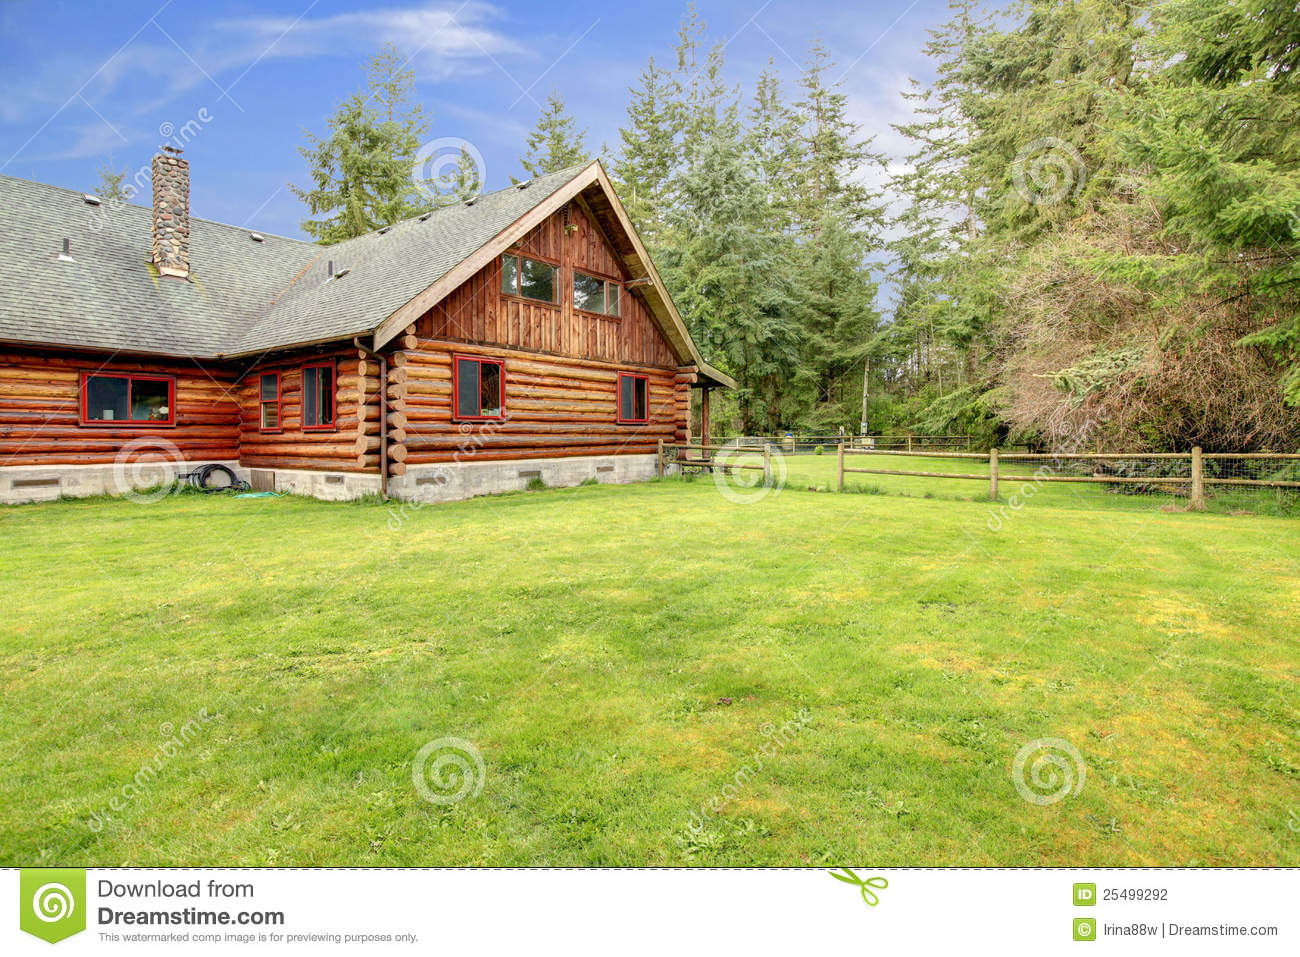 Old Rustic American Log Cabin In The Country Side Stock